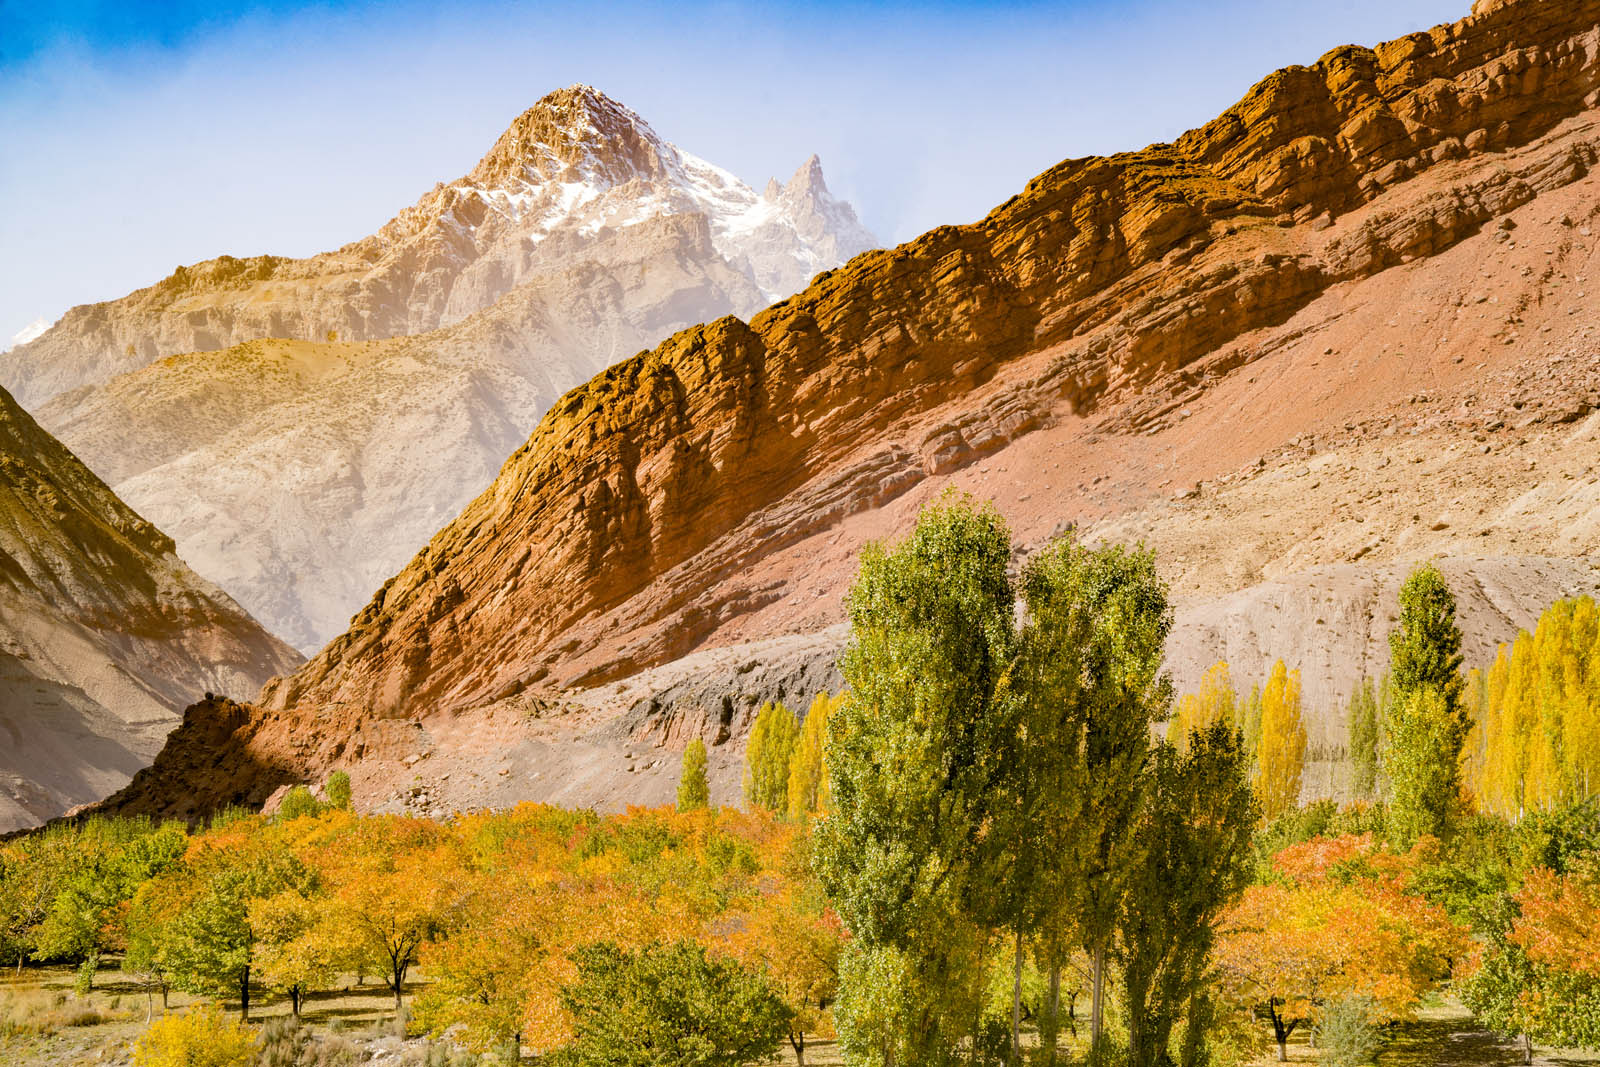 Gissar Mountains in autumn, Tajikistan, Central Asia photographed by Tom Till